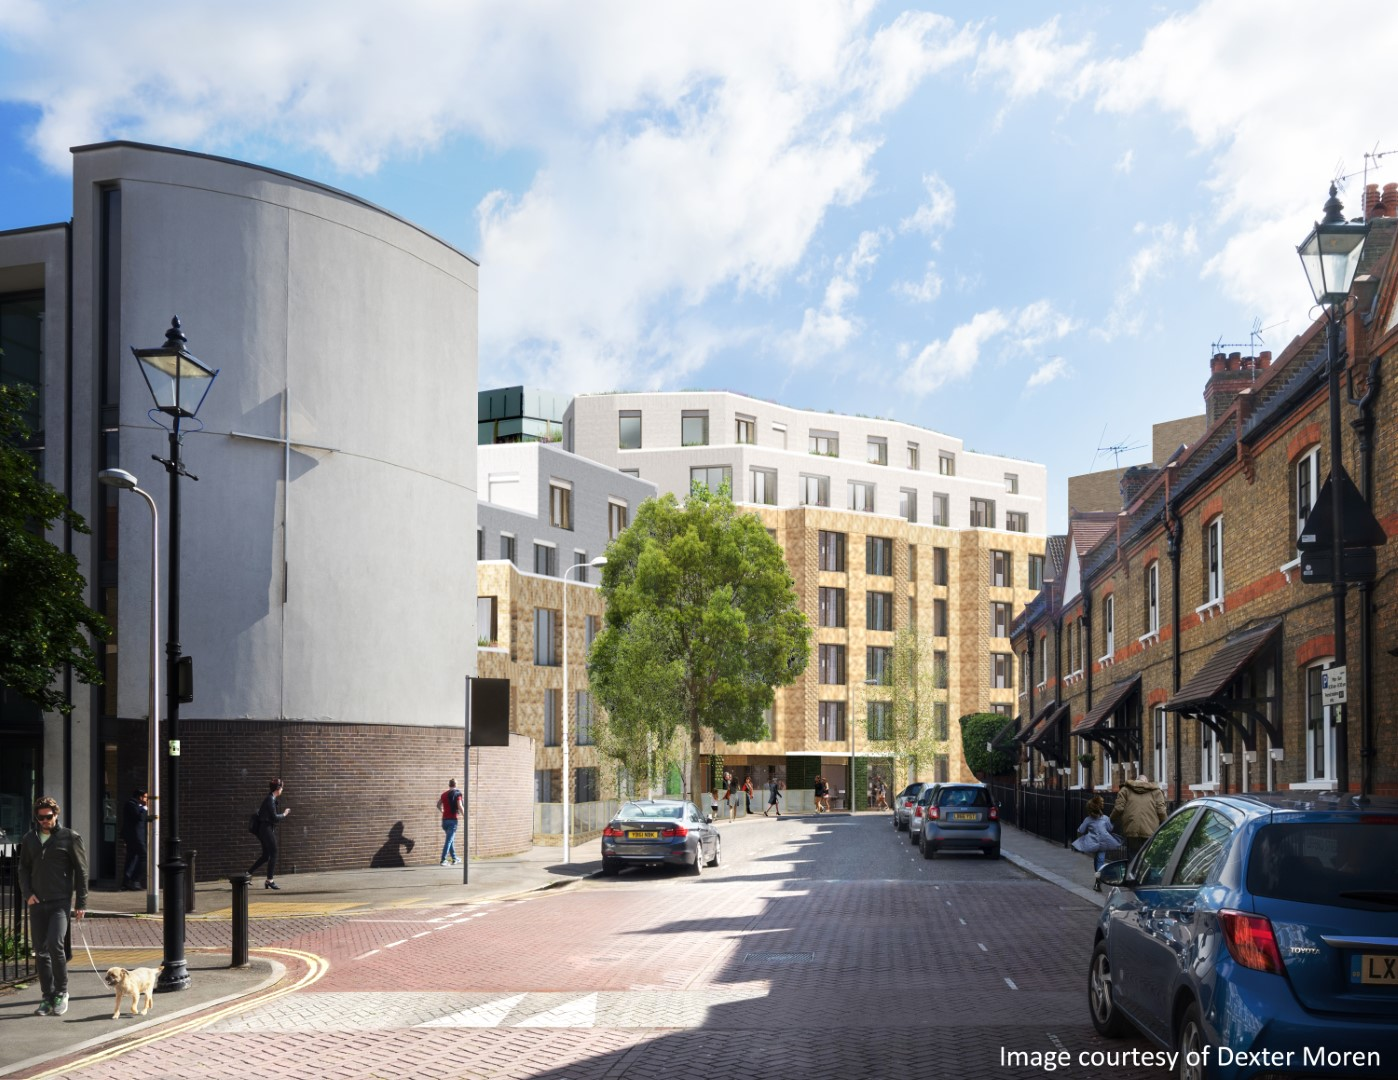 Construction works reach Practical Completion on Ufford Street